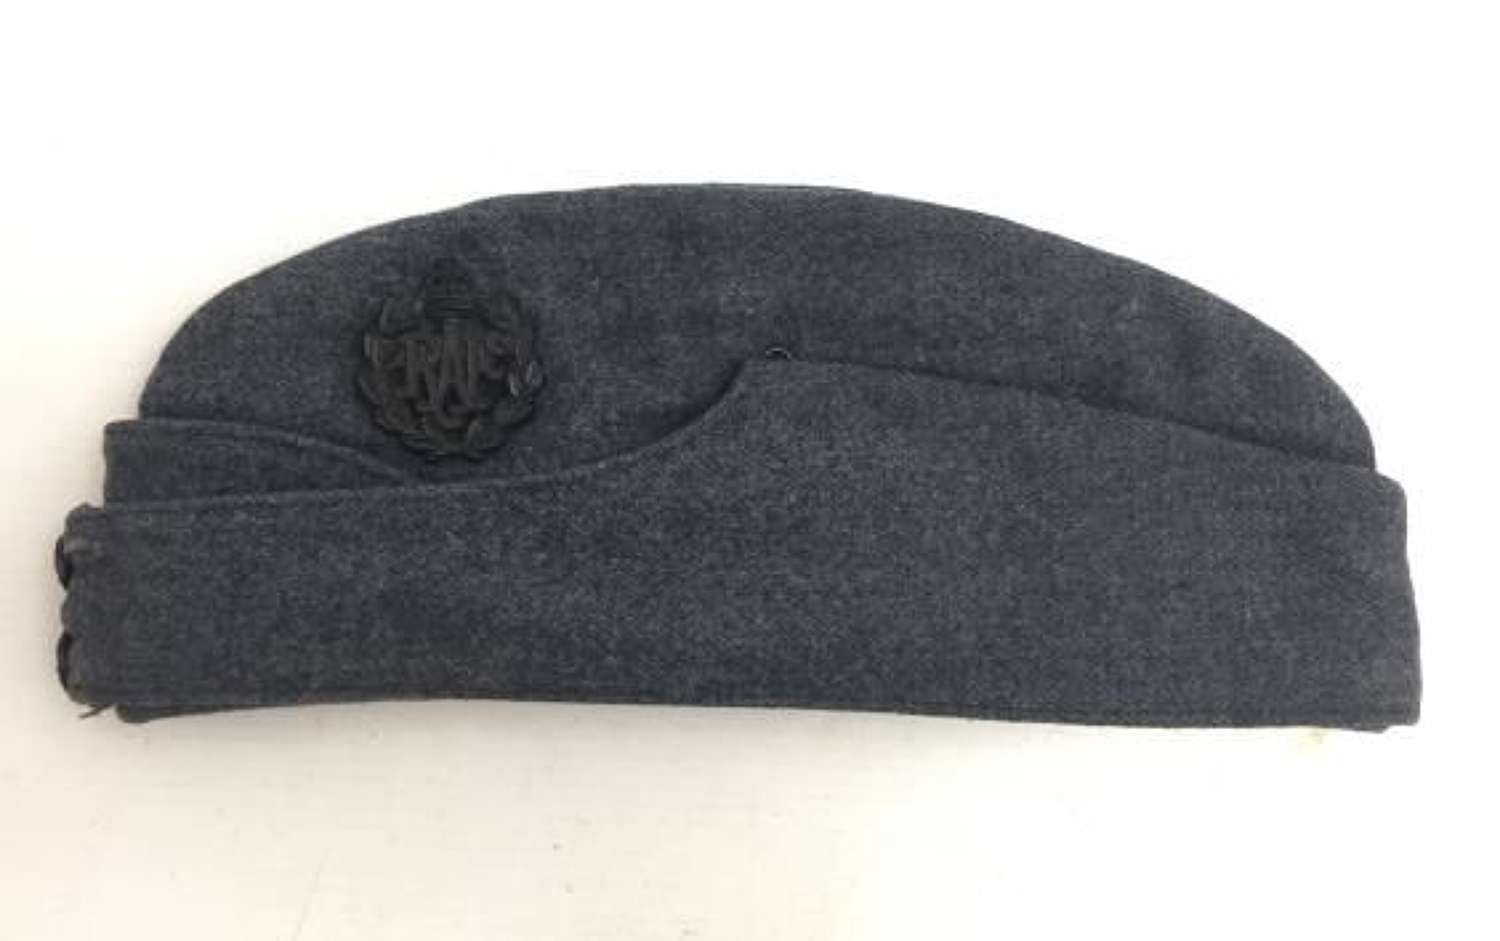 Original WW2 RAF OA Forage Cap with Black Bakelite Cap Badge